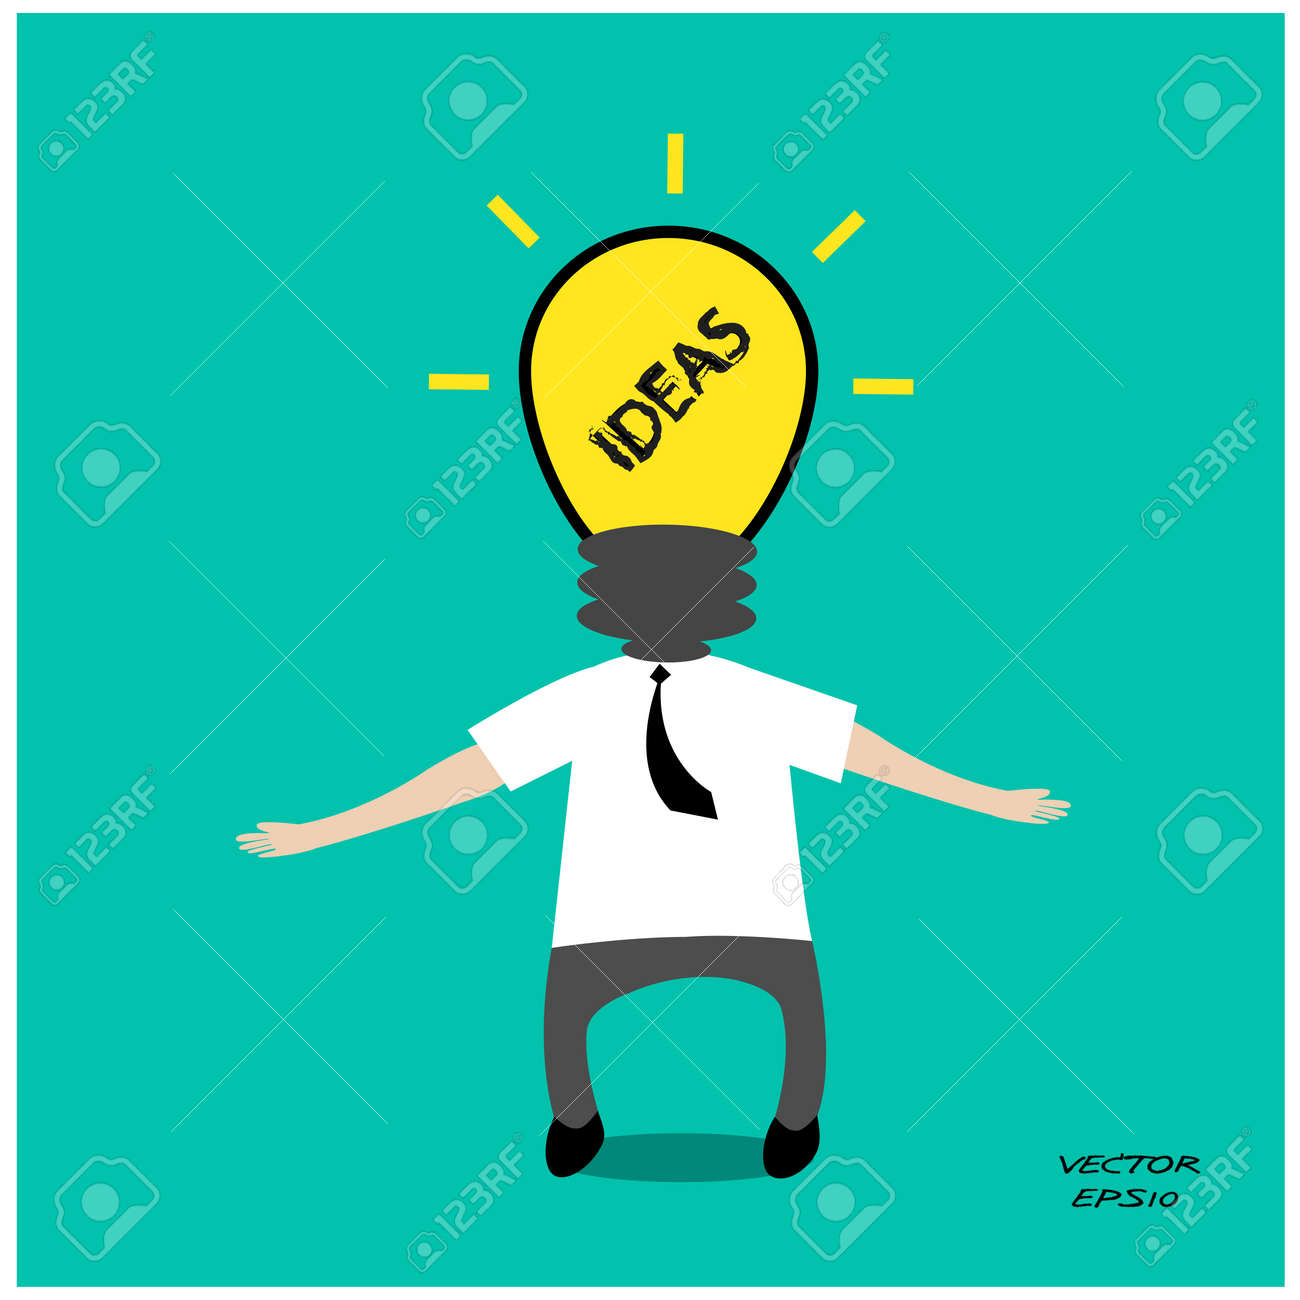 Businessman icon,business concept Stock Vector - 21473152